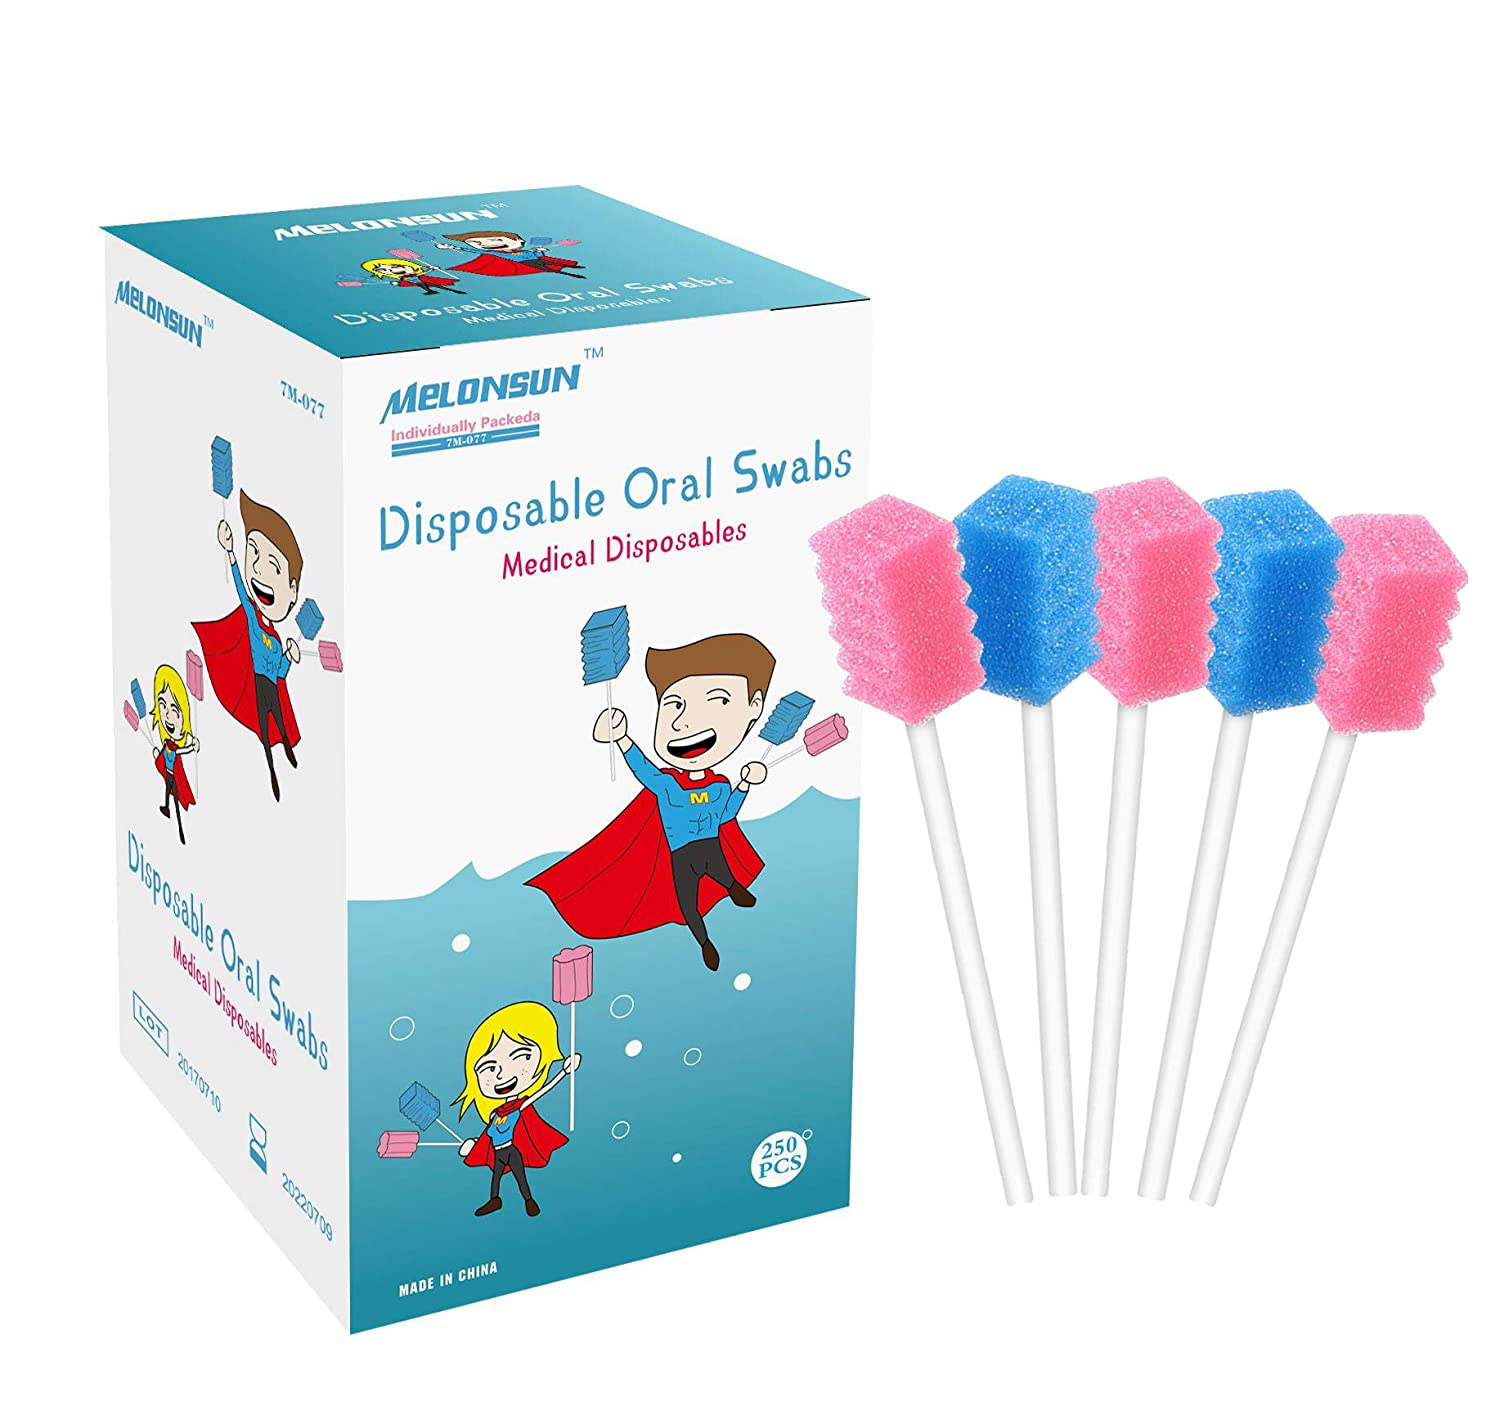 250PCS Disposable Oral Swabs, Individually Wrapped Mouth Swabs Sponge